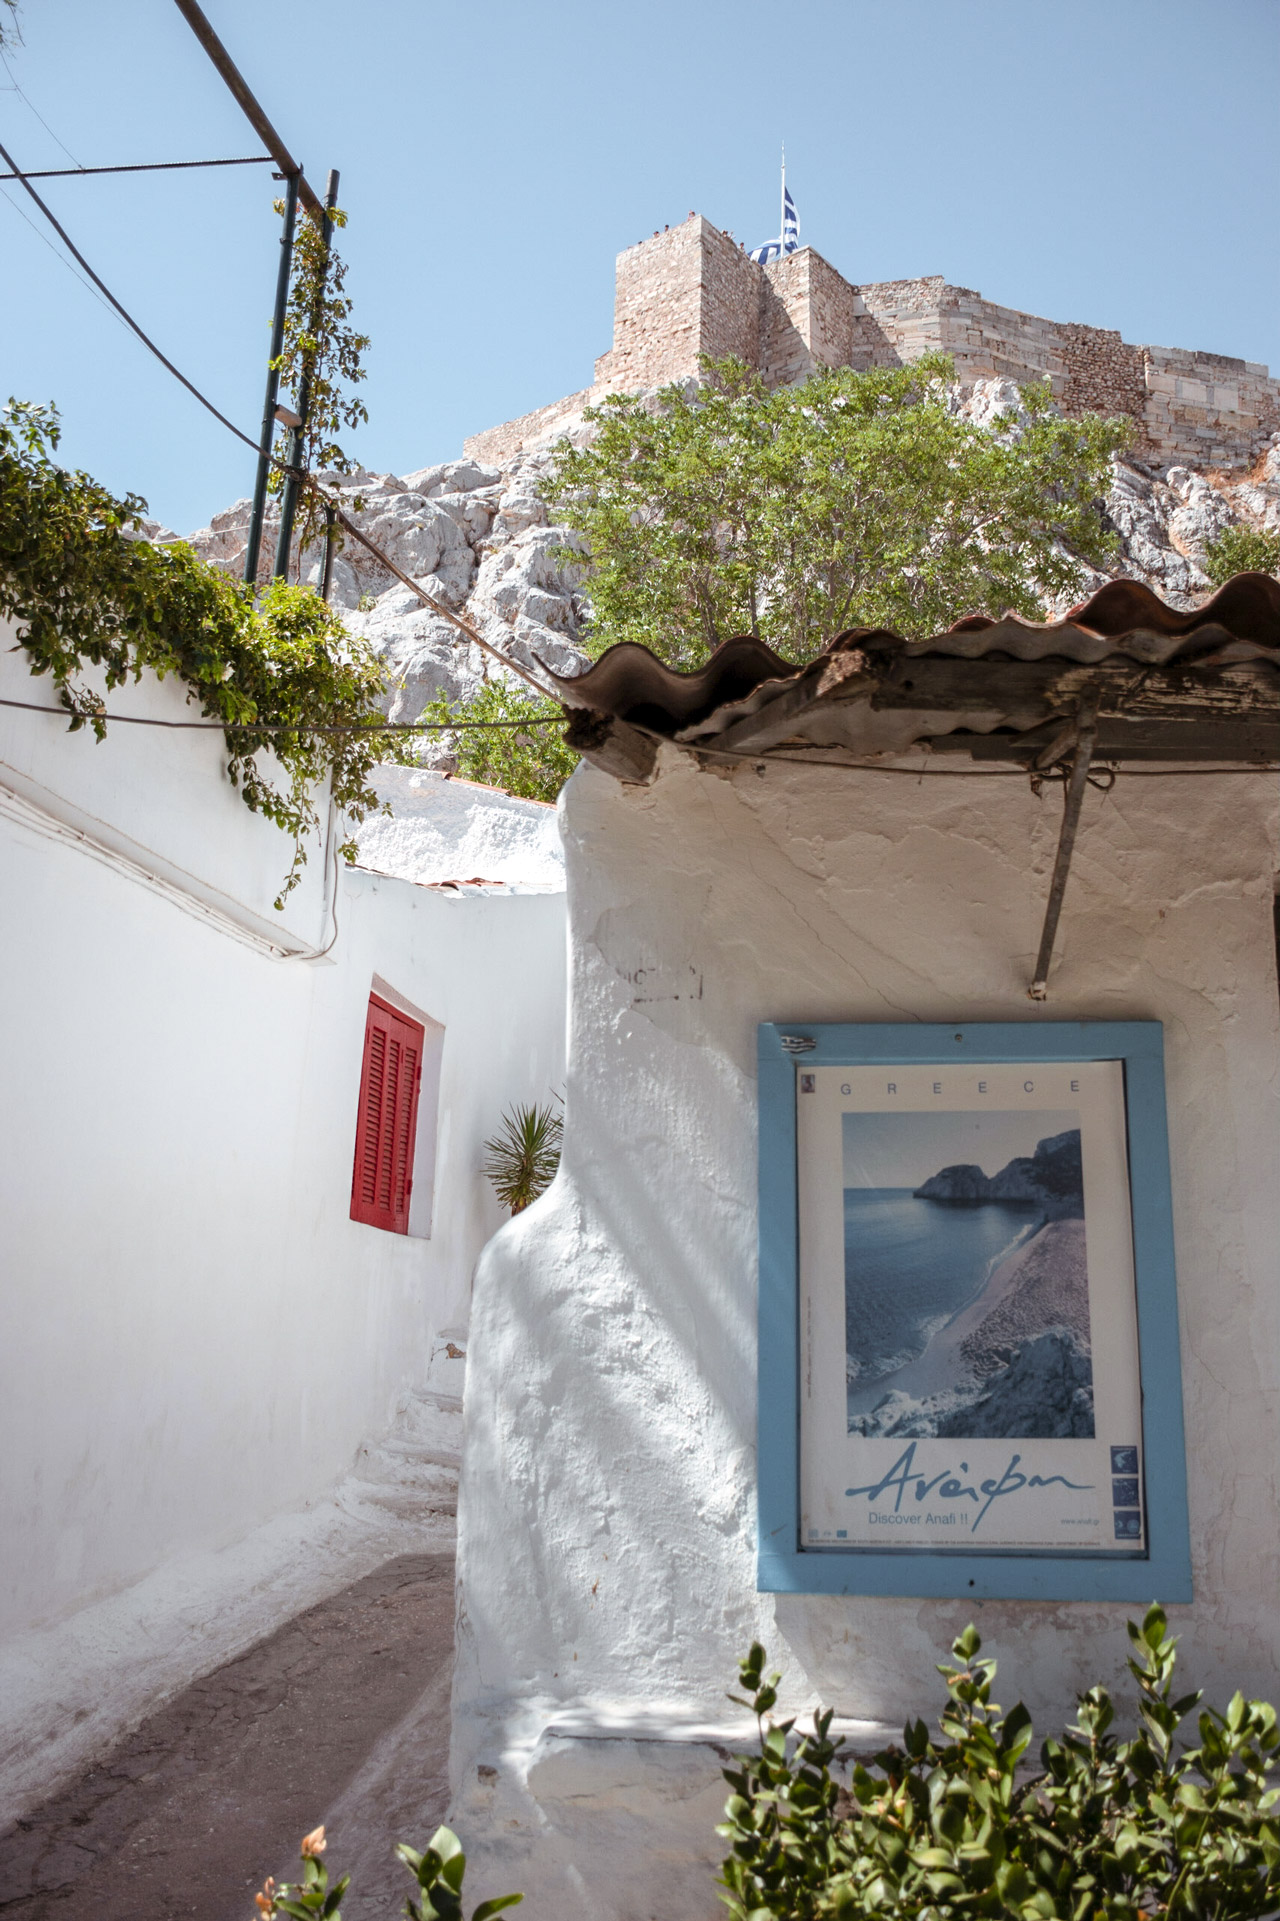 The neighborhood of Anafiotika resembles t he typical architecture of the Cyclades